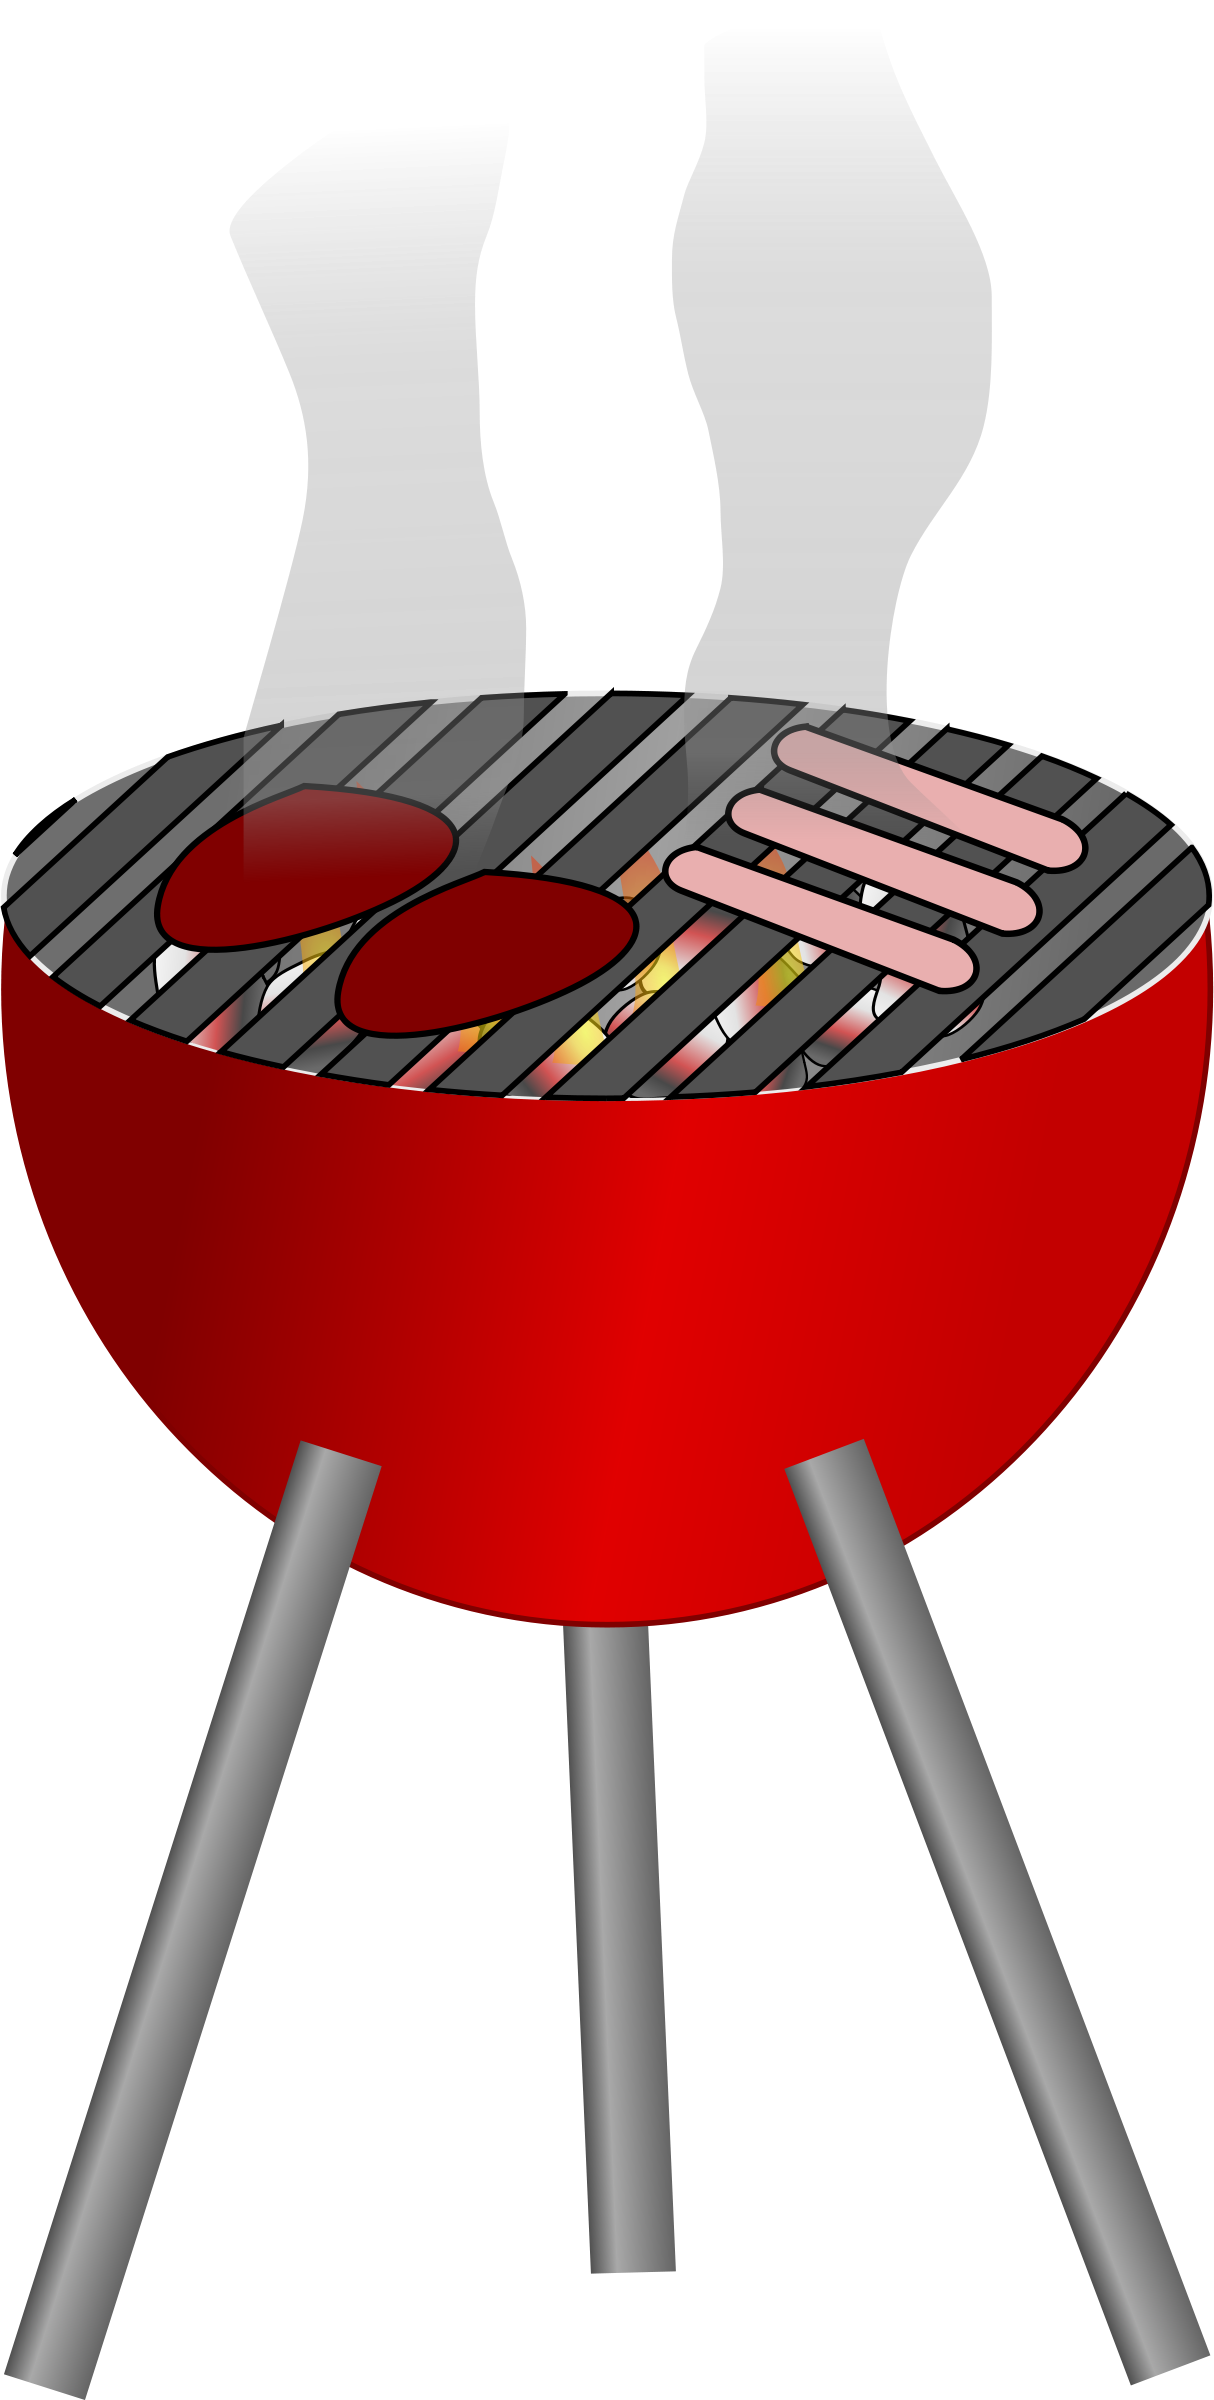 Cookout clipart bbq, Cookout bbq Transparent FREE for.